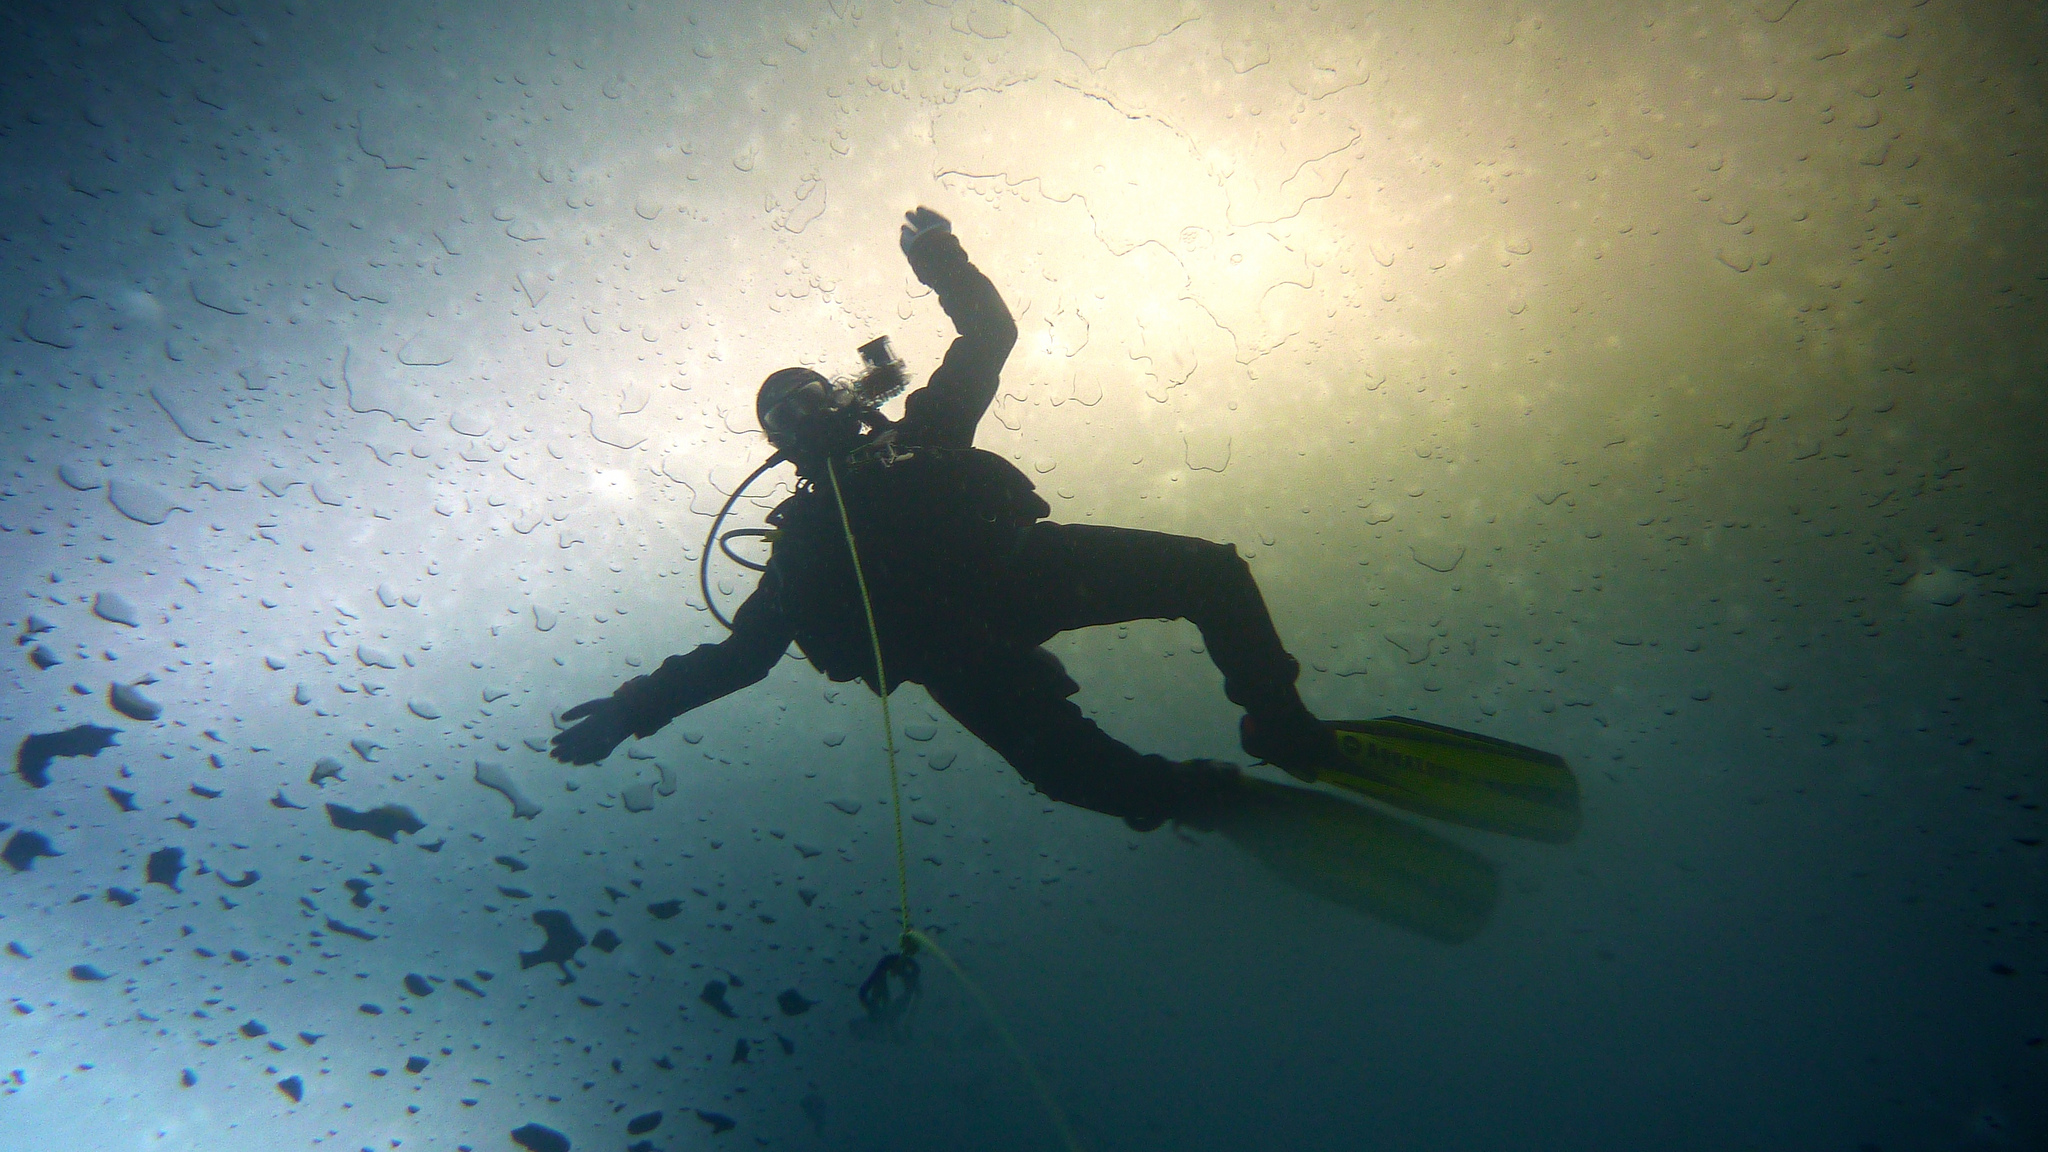 """""""This is Why we Dive!"""" by David Haberthür via Flickr Creative Commons"""